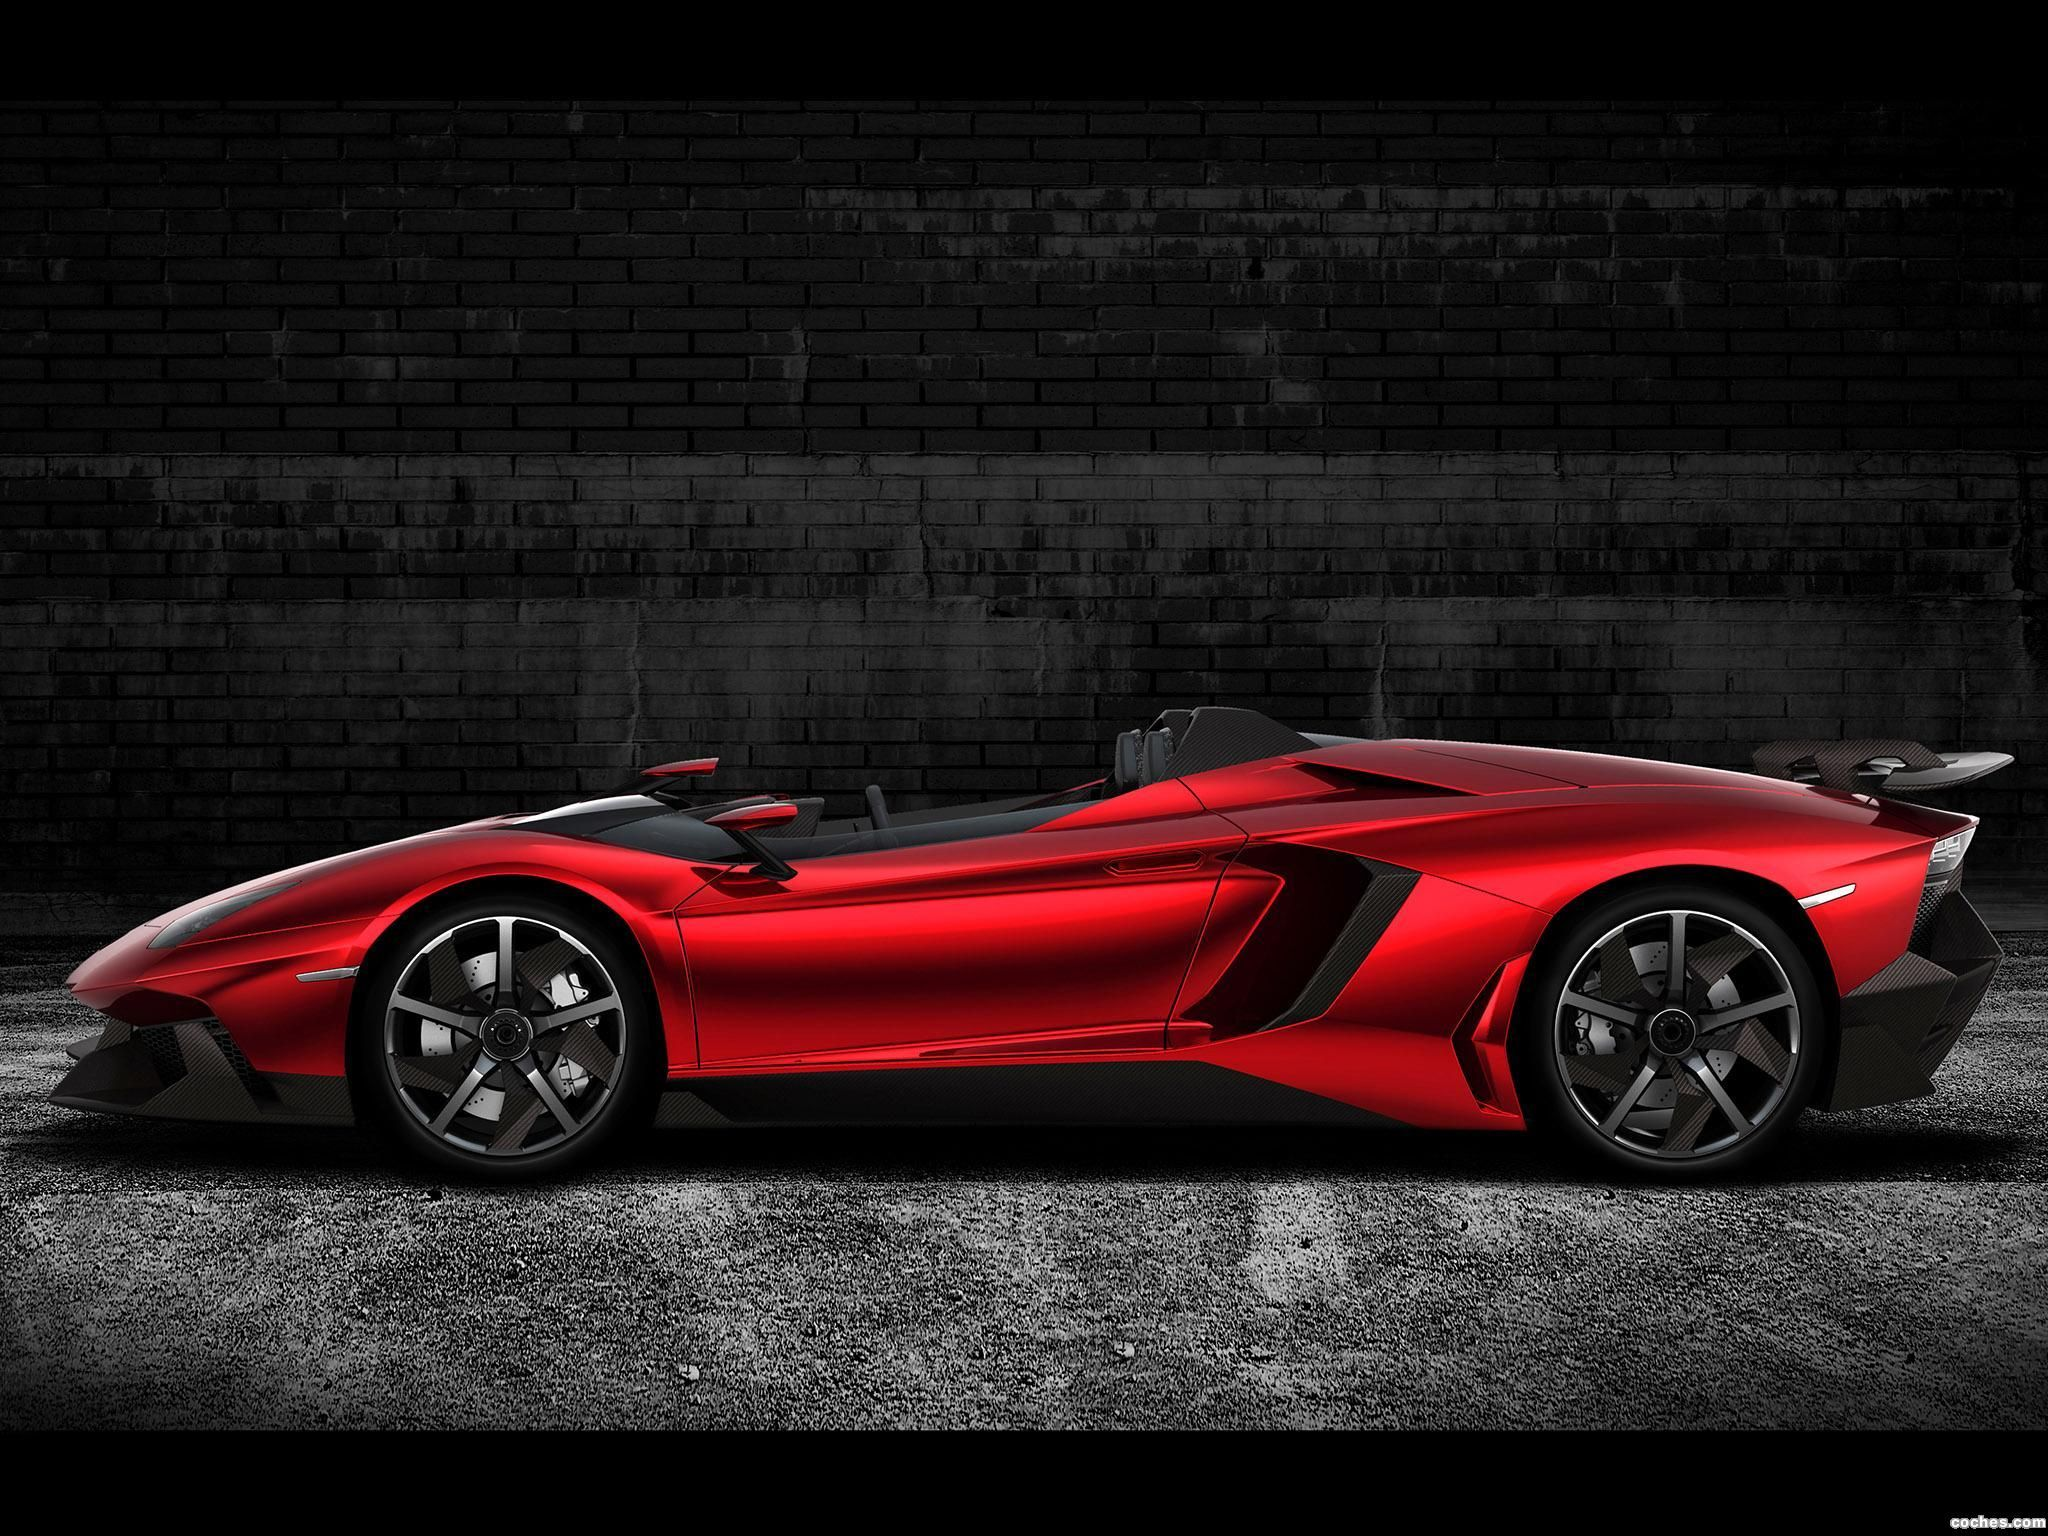 Lamborghini Aventador J Concept 2012 Red Poppy Fiery Red And